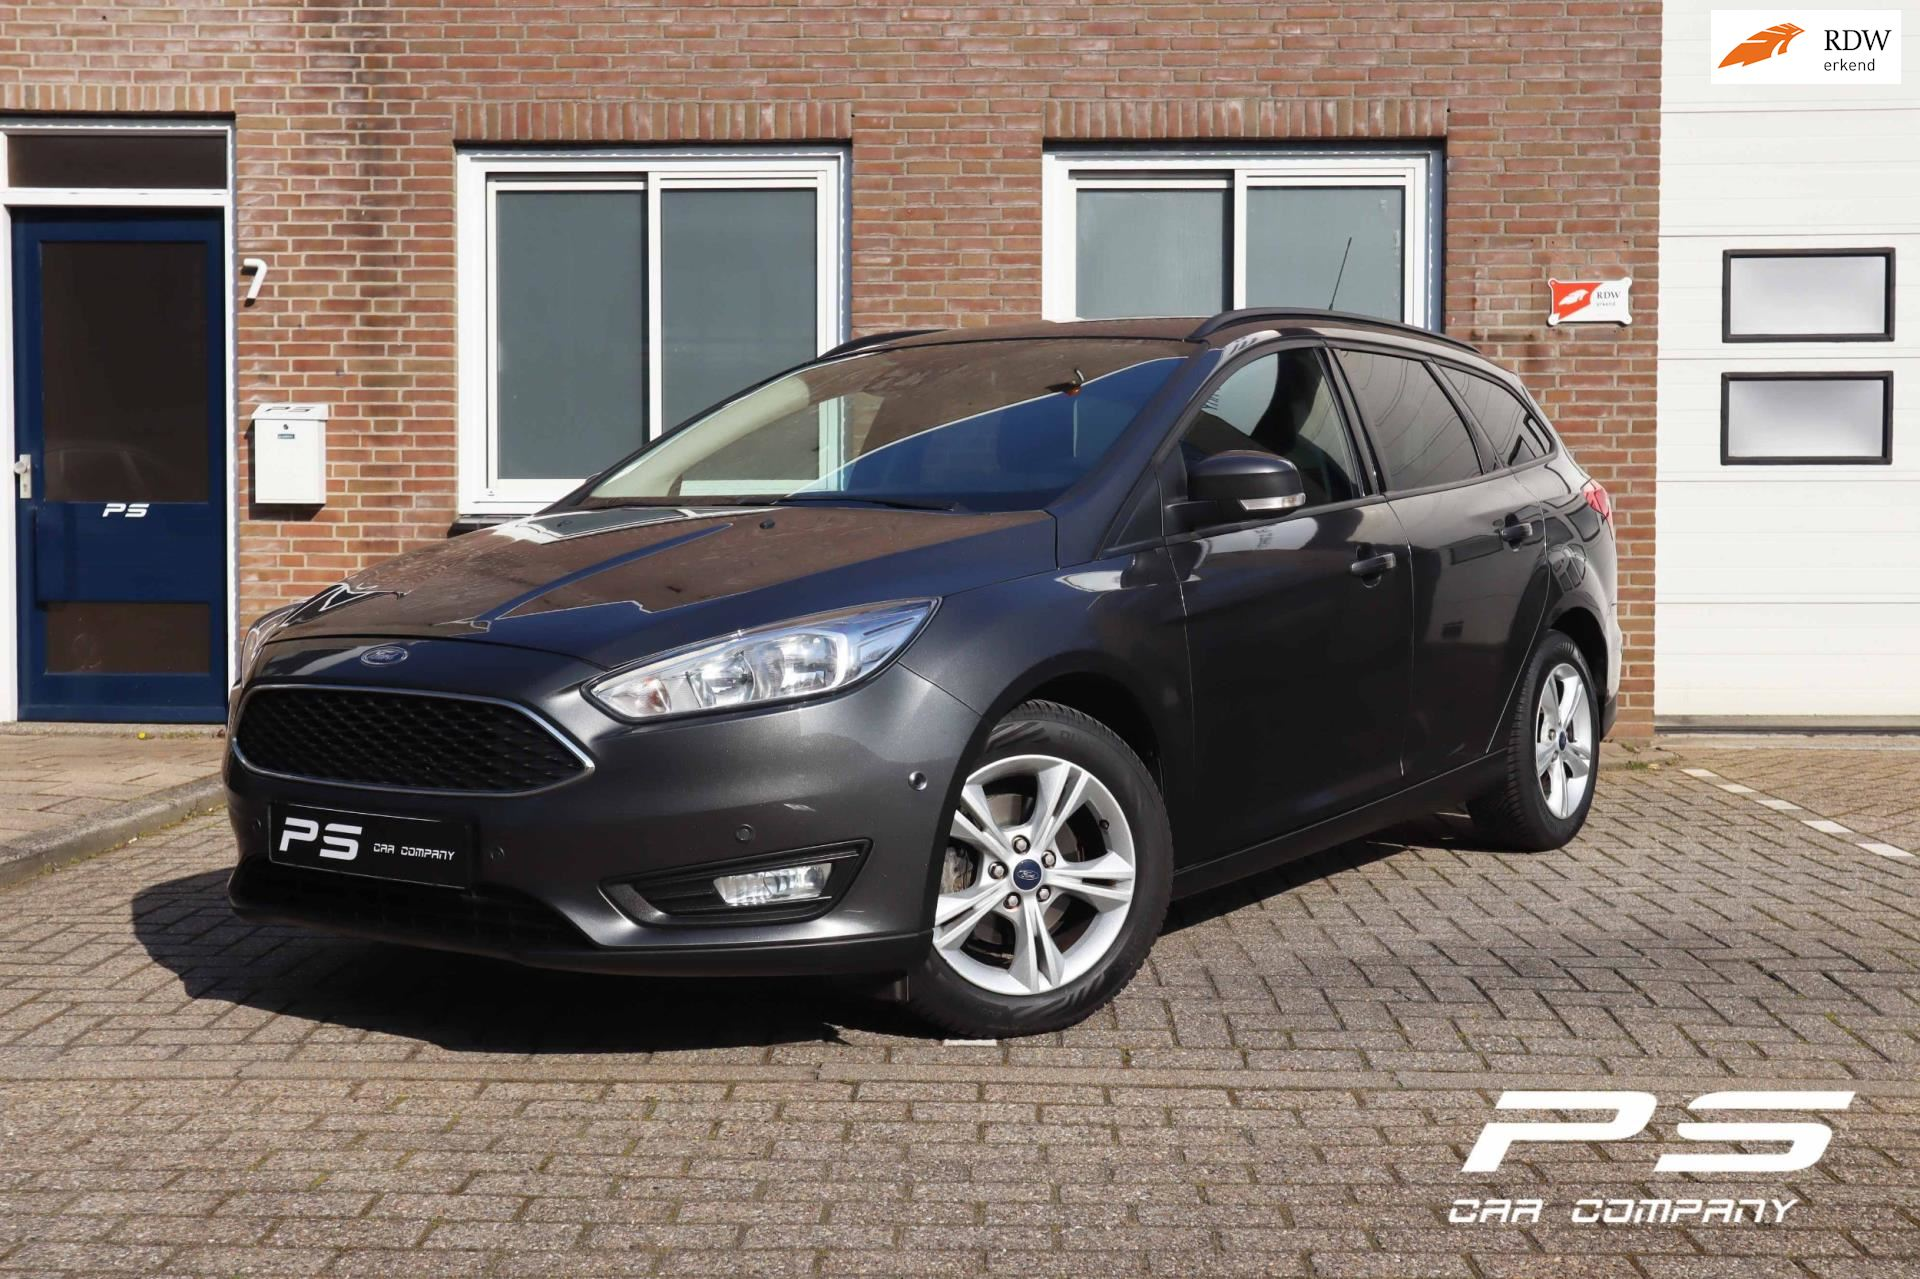 Ford Focus Wagon occasion - PS Car Company